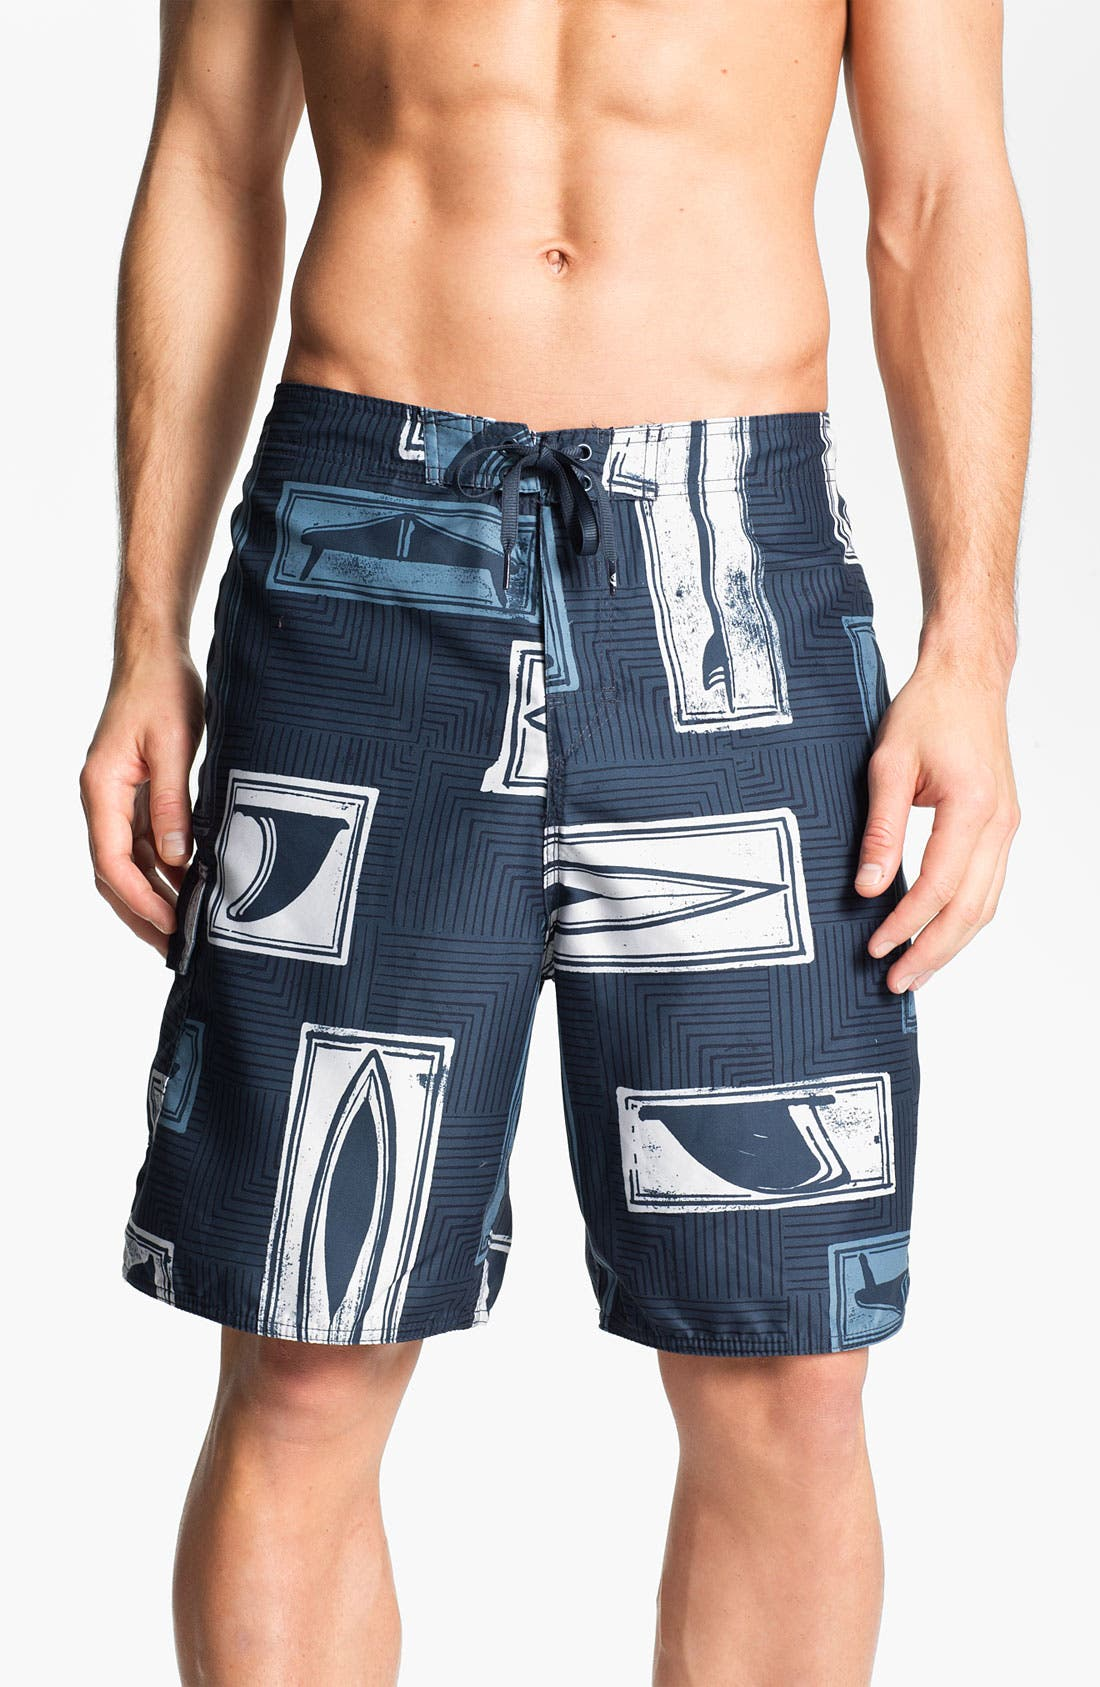 Alternate Image 1 Selected - Quiksilver 'Boardroom' Hybrid Swim Shorts